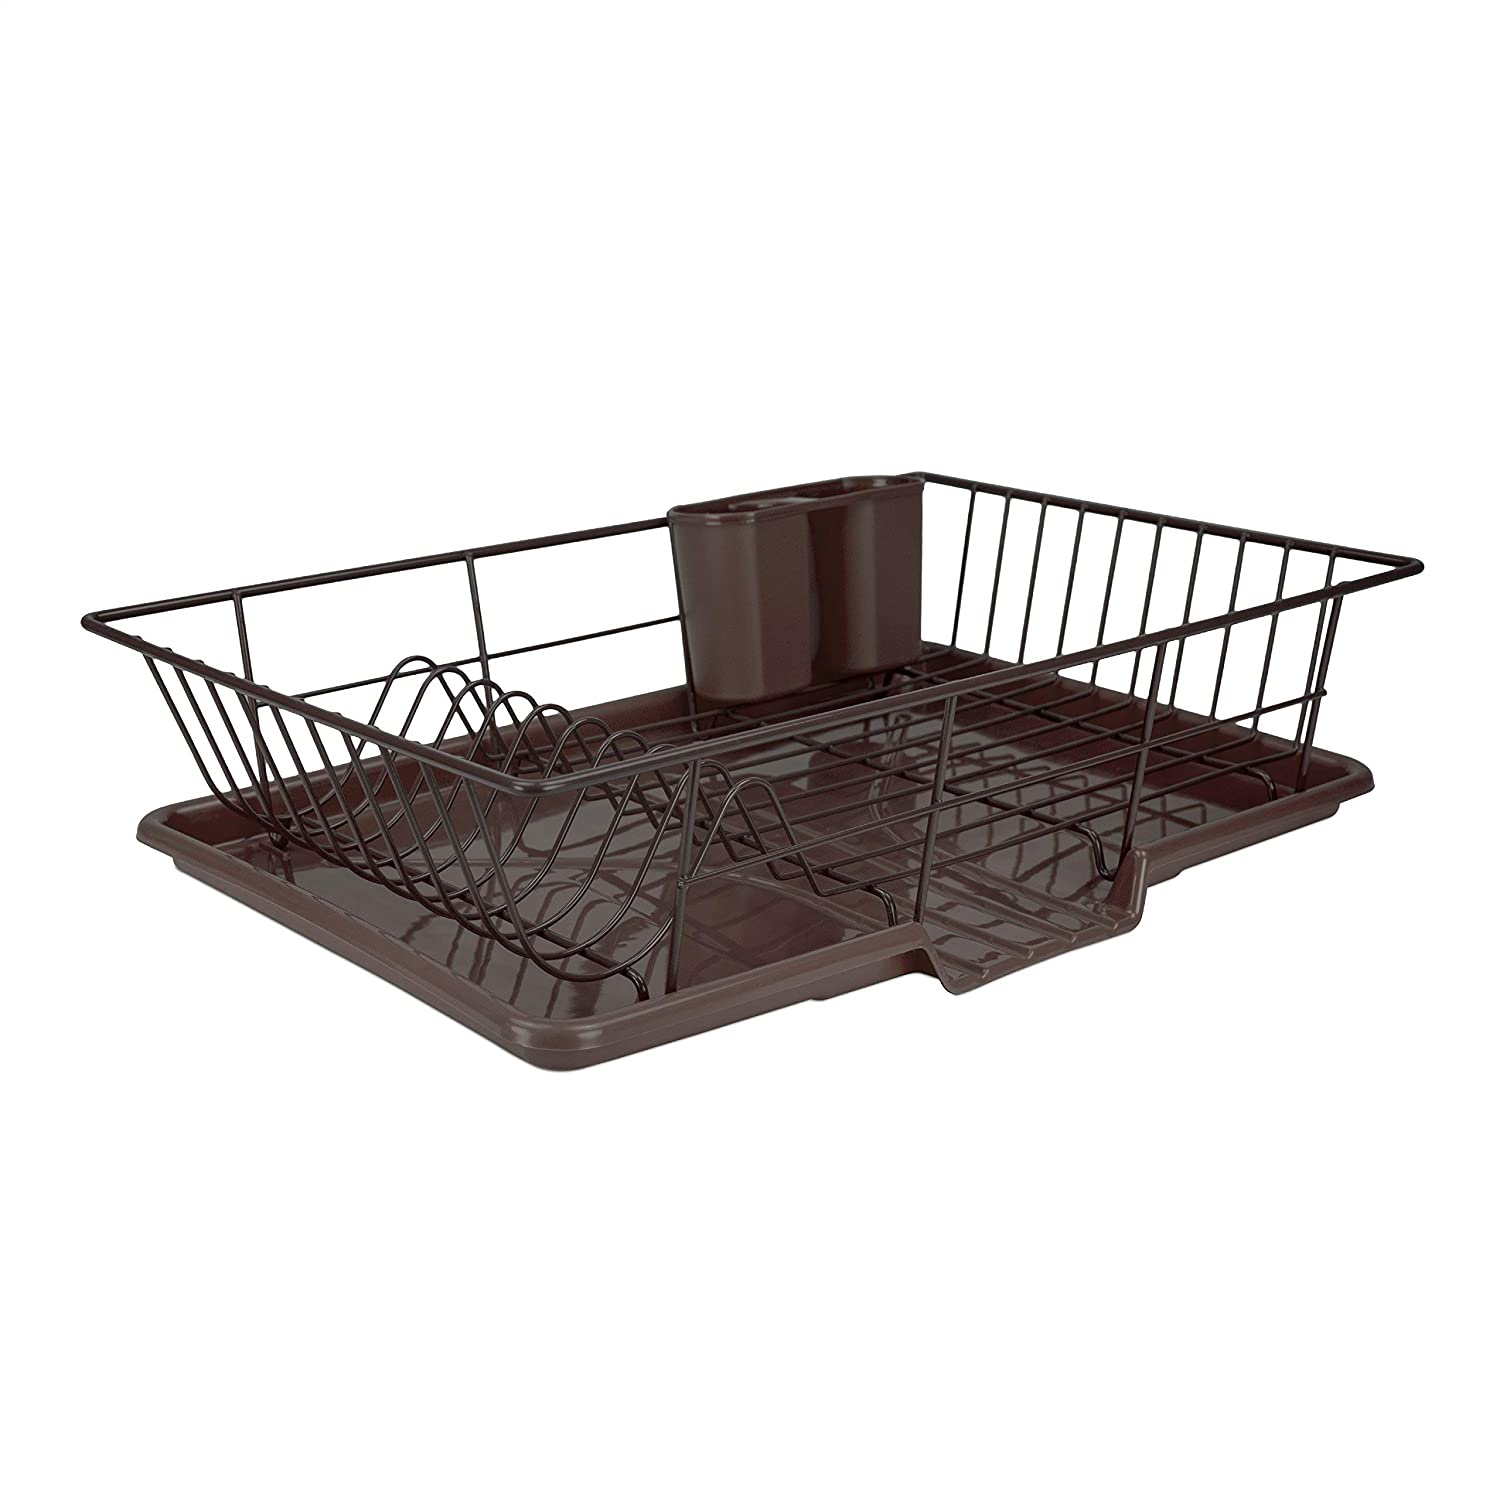 Home Basics DD30236 Dish Drainer Set (3 Piece), Bronze